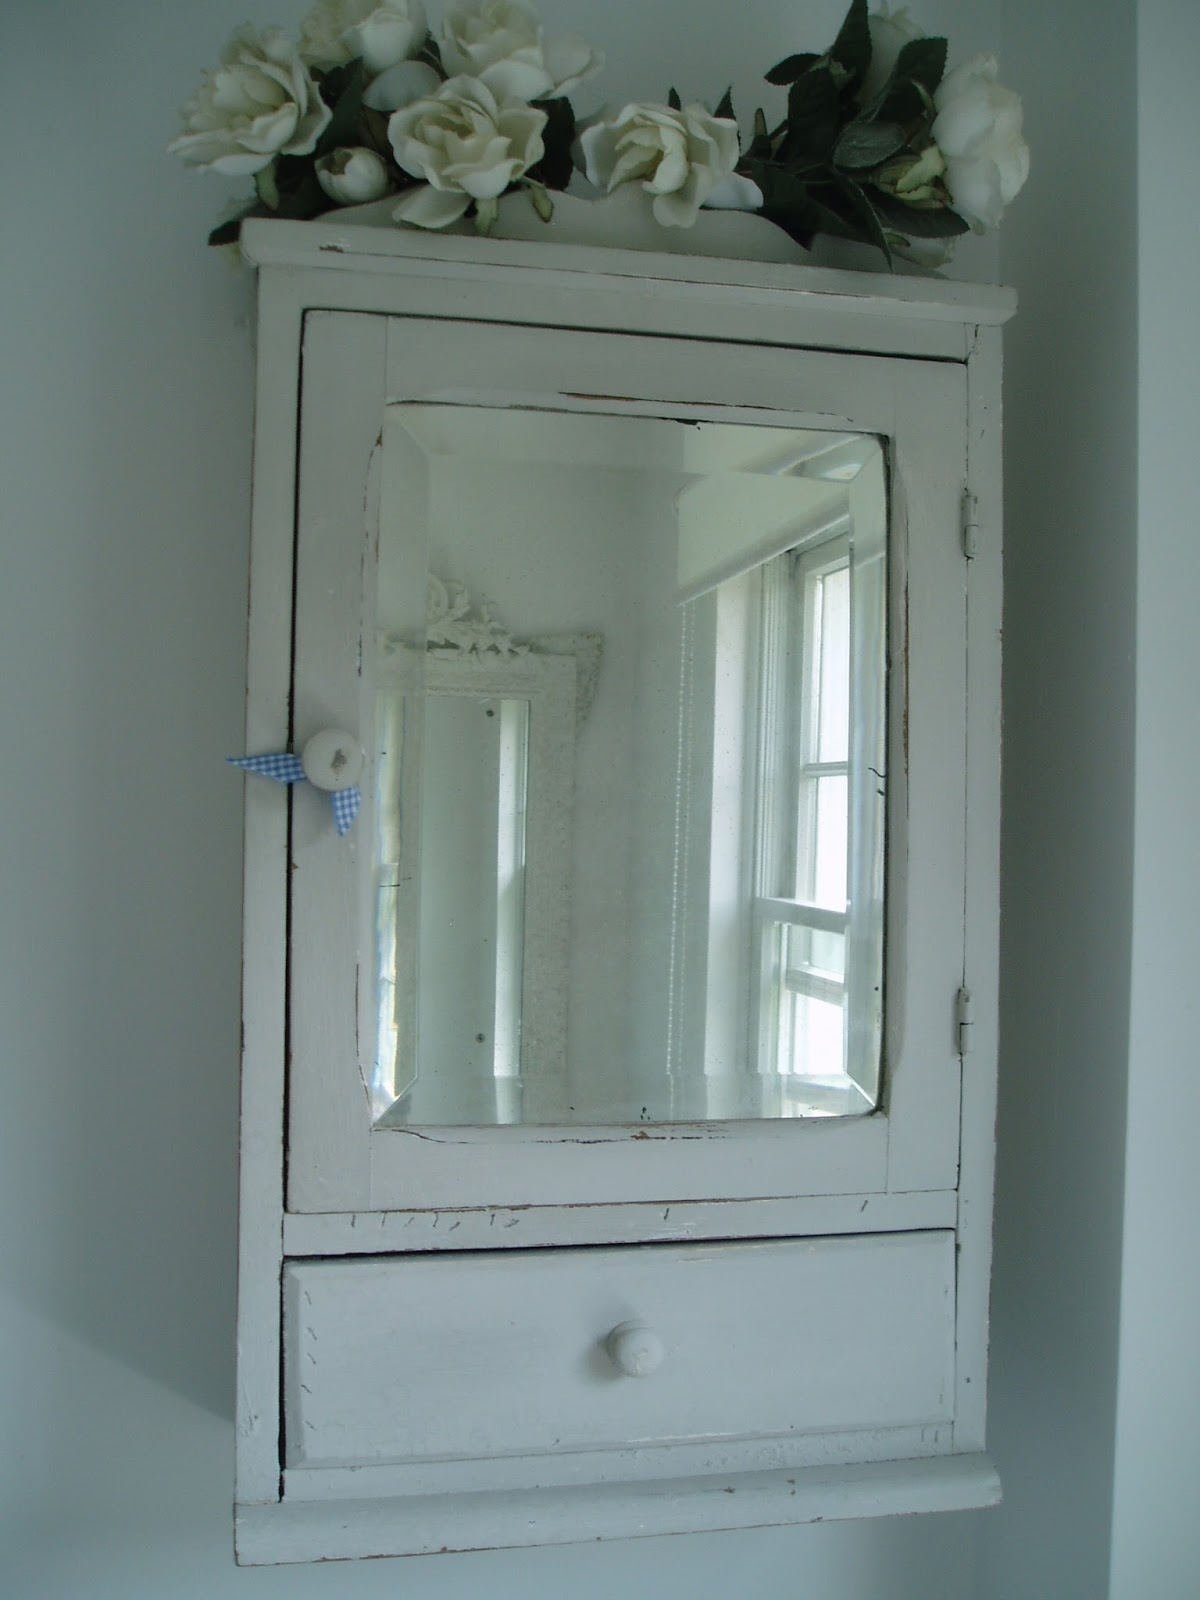 Vintage Bathroom Mirror Cabinet Creative Bathroom Decoration With Retro Bathroom Mirrors (Image 12 of 15)